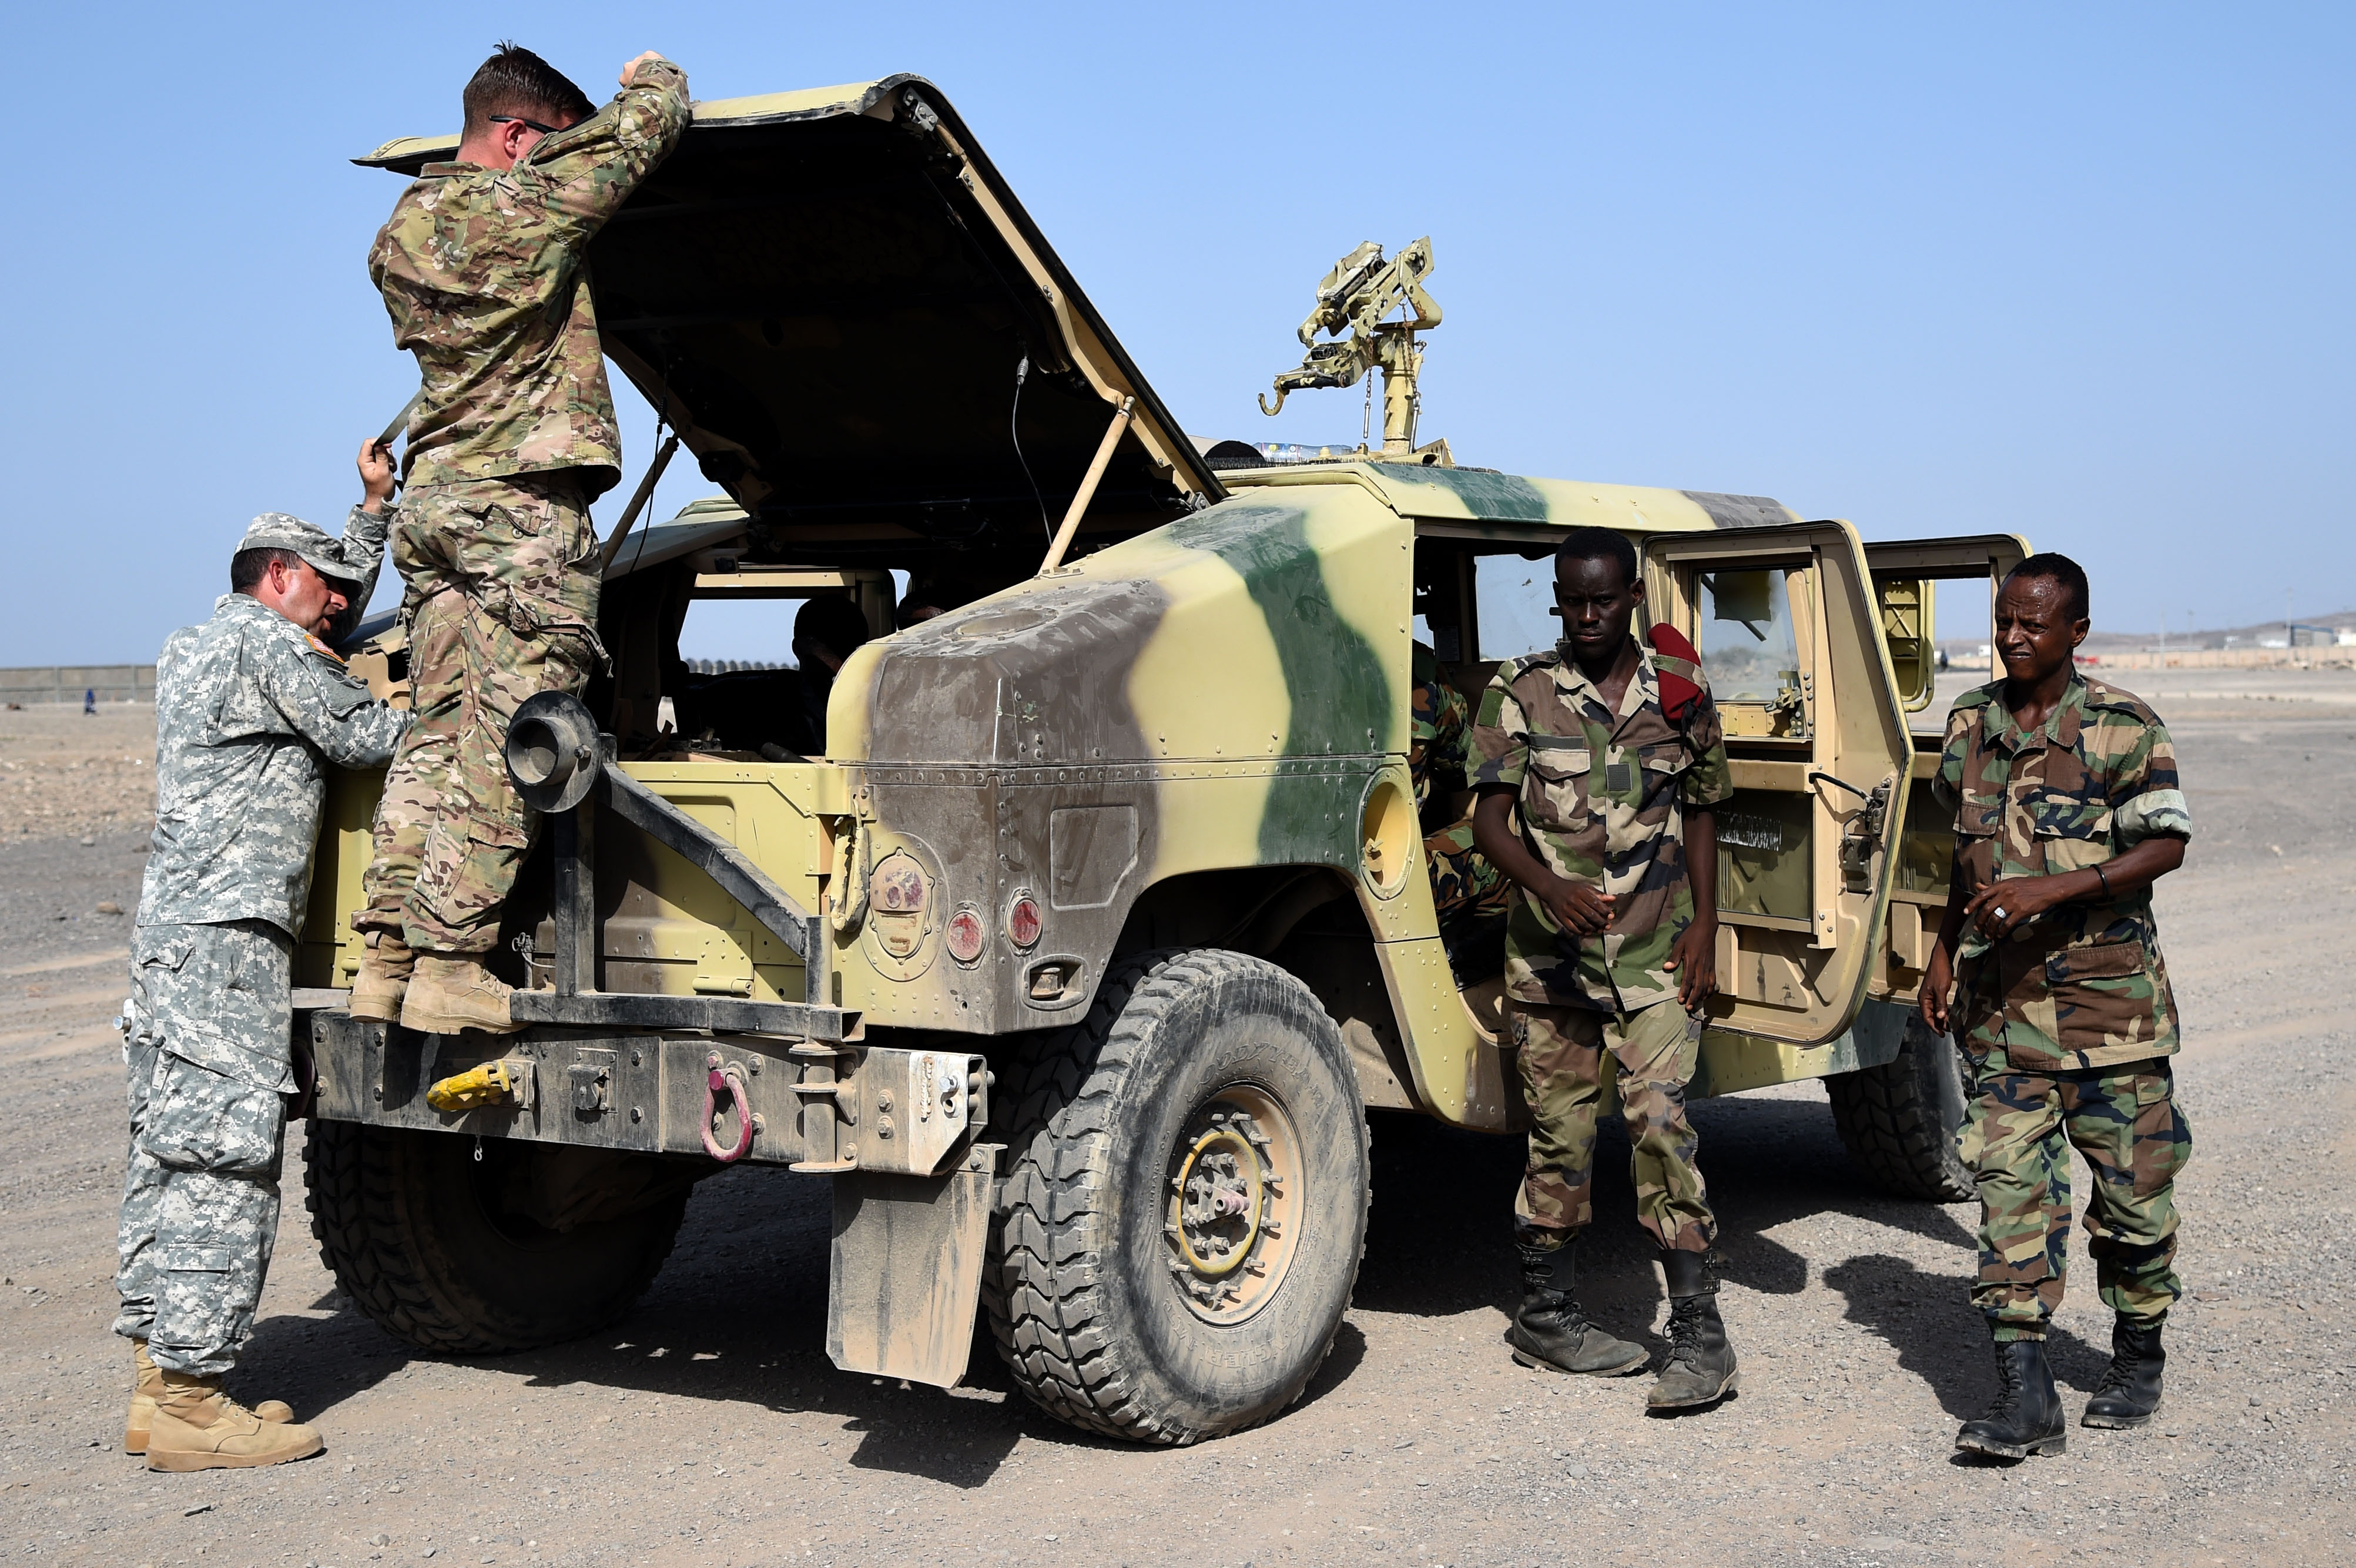 CAMP CHEIK OSMAN, Djibouti – Djiboutian Armed Forces (FAD) Soldiers prepare their Humvee for the final test after completing a five-month training course instructed by the U.S. Army Regionally Aligned Forces Soldiers, May 16, 2016, at Camp Cheik Osman, Djibouti. The FAD soldiers tested the skills they learned by demonstrating their reactions to various mock situations from convoying through a road block, identifying mock roadside bombs, medical care, and vehicle recovery. (U.S. Air Force photo by Staff Sgt. Tiffany DeNault)